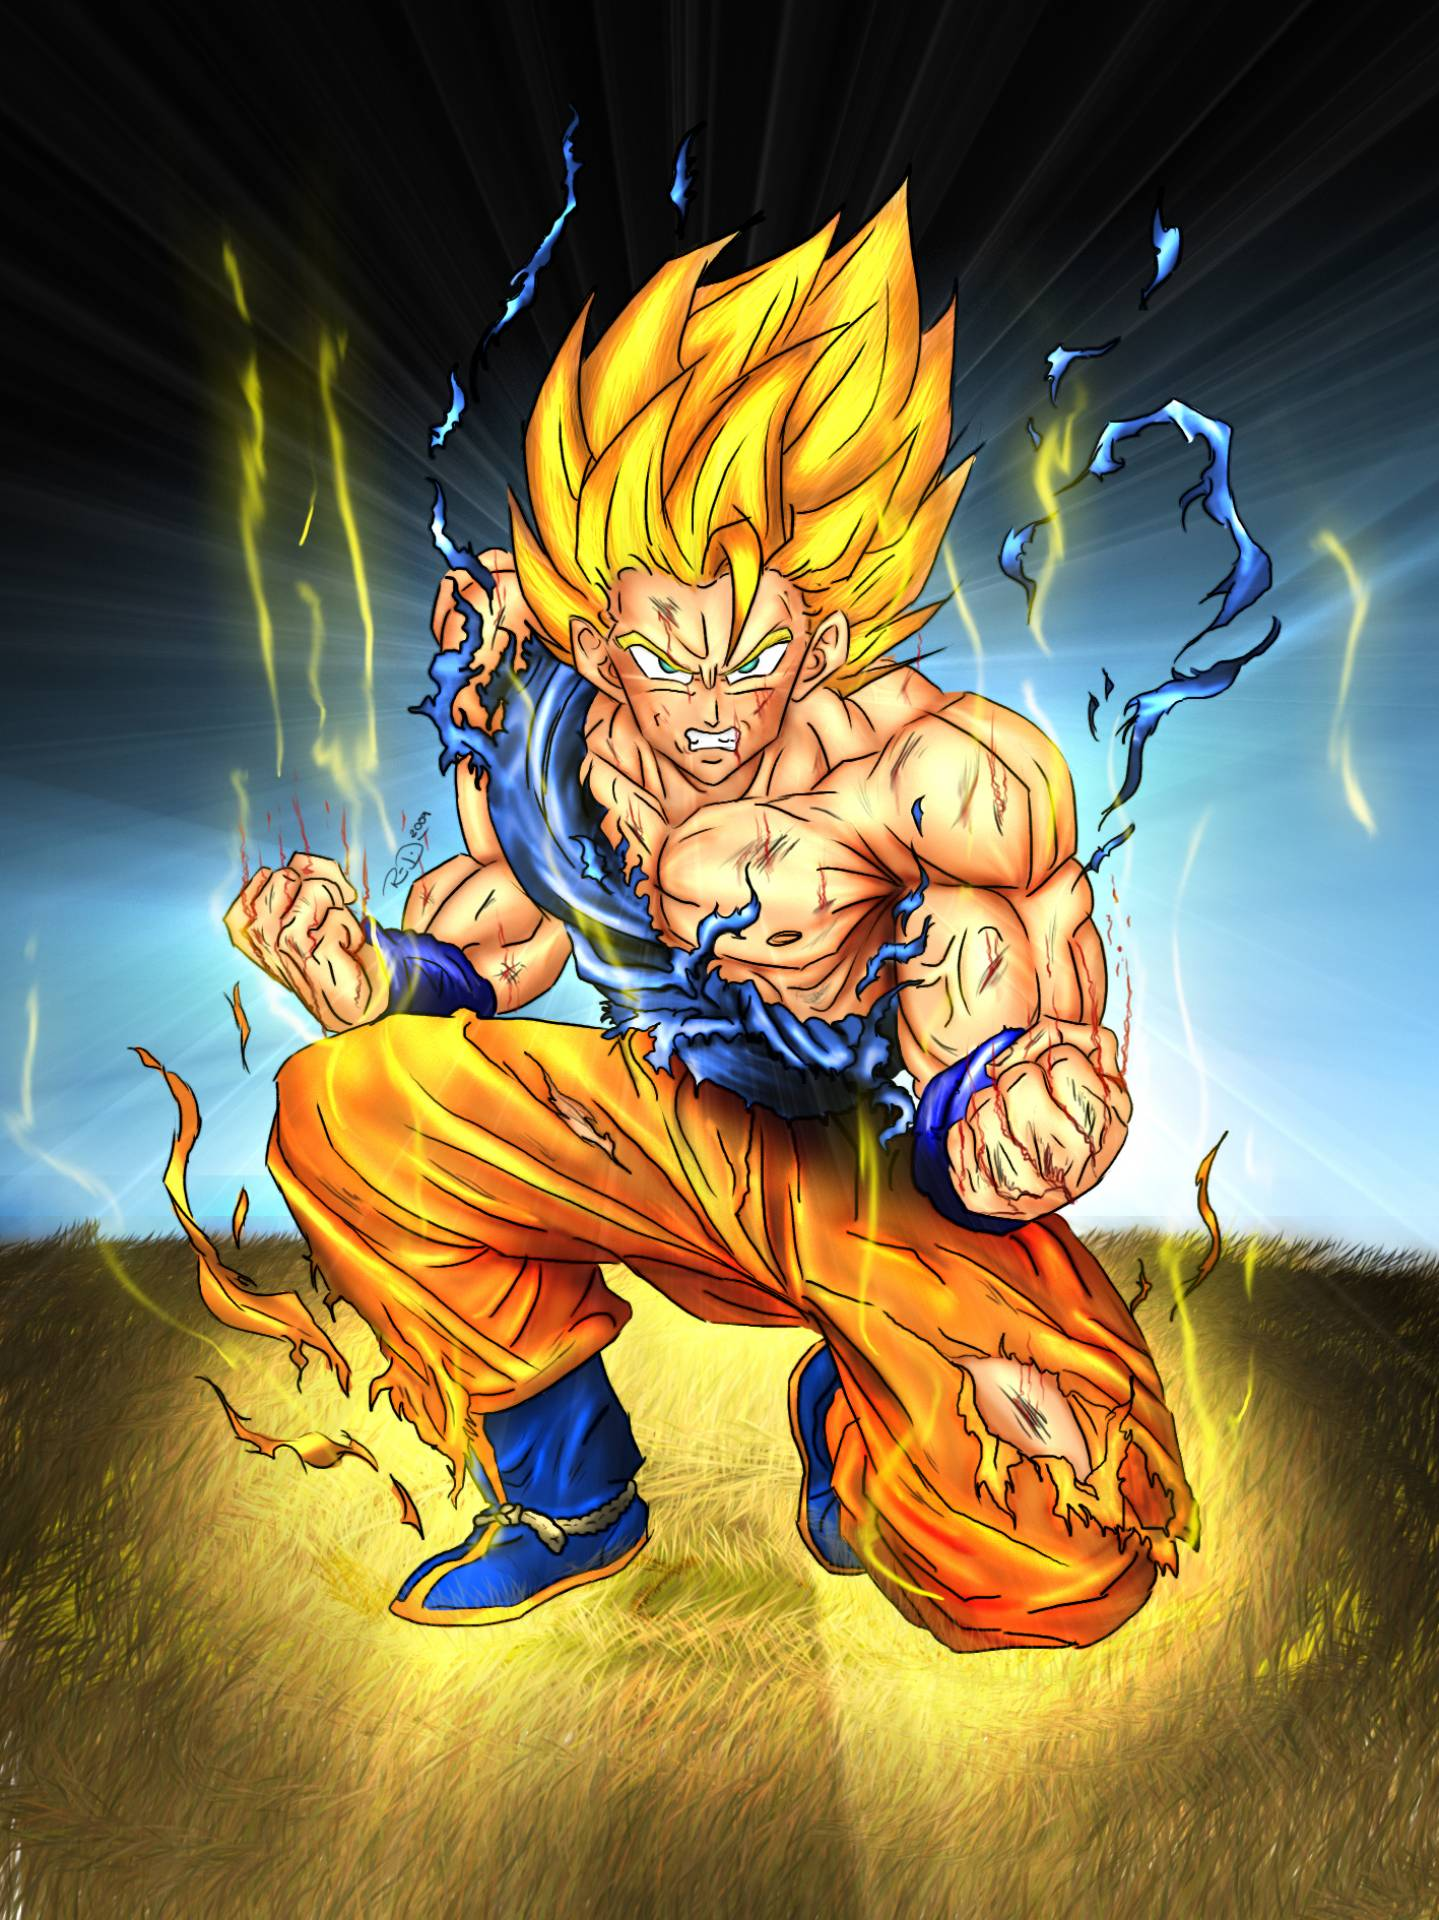 Super Saiyan Goku Dragon Ball Z Fan Art 35516340 Fanpop Page 3